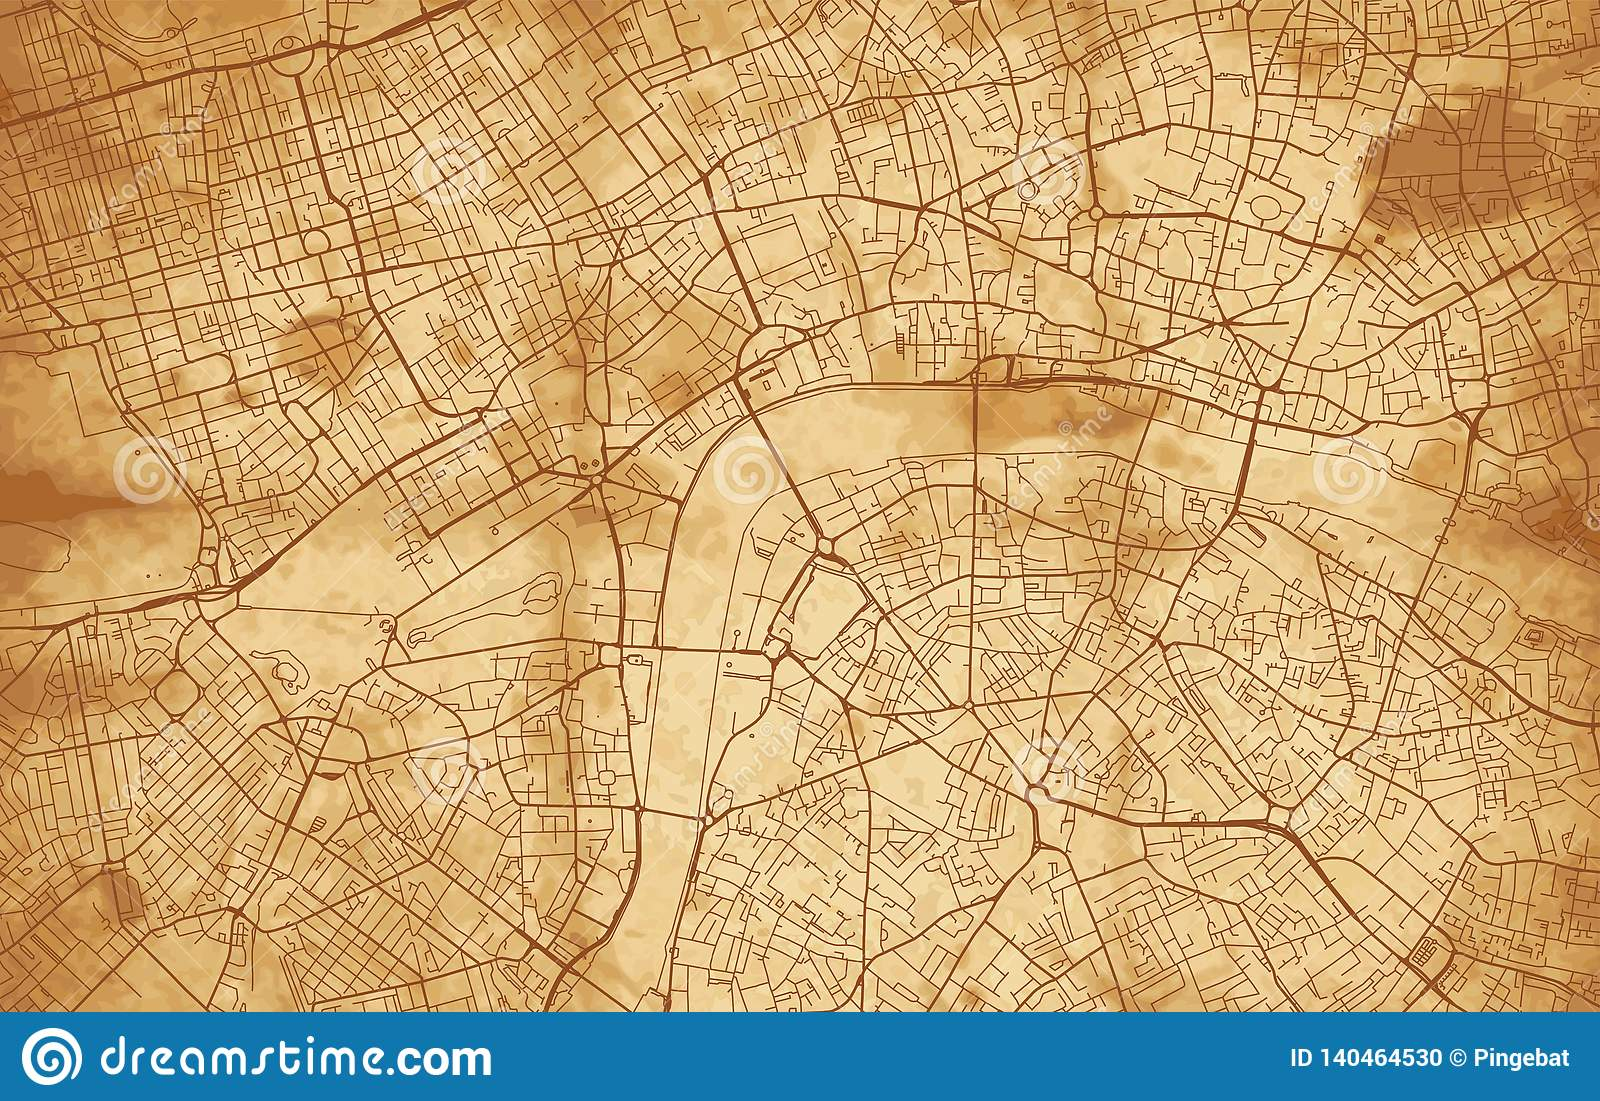 Map City London.Vintage Street Map Of The City Of London Stock Vector Illustration